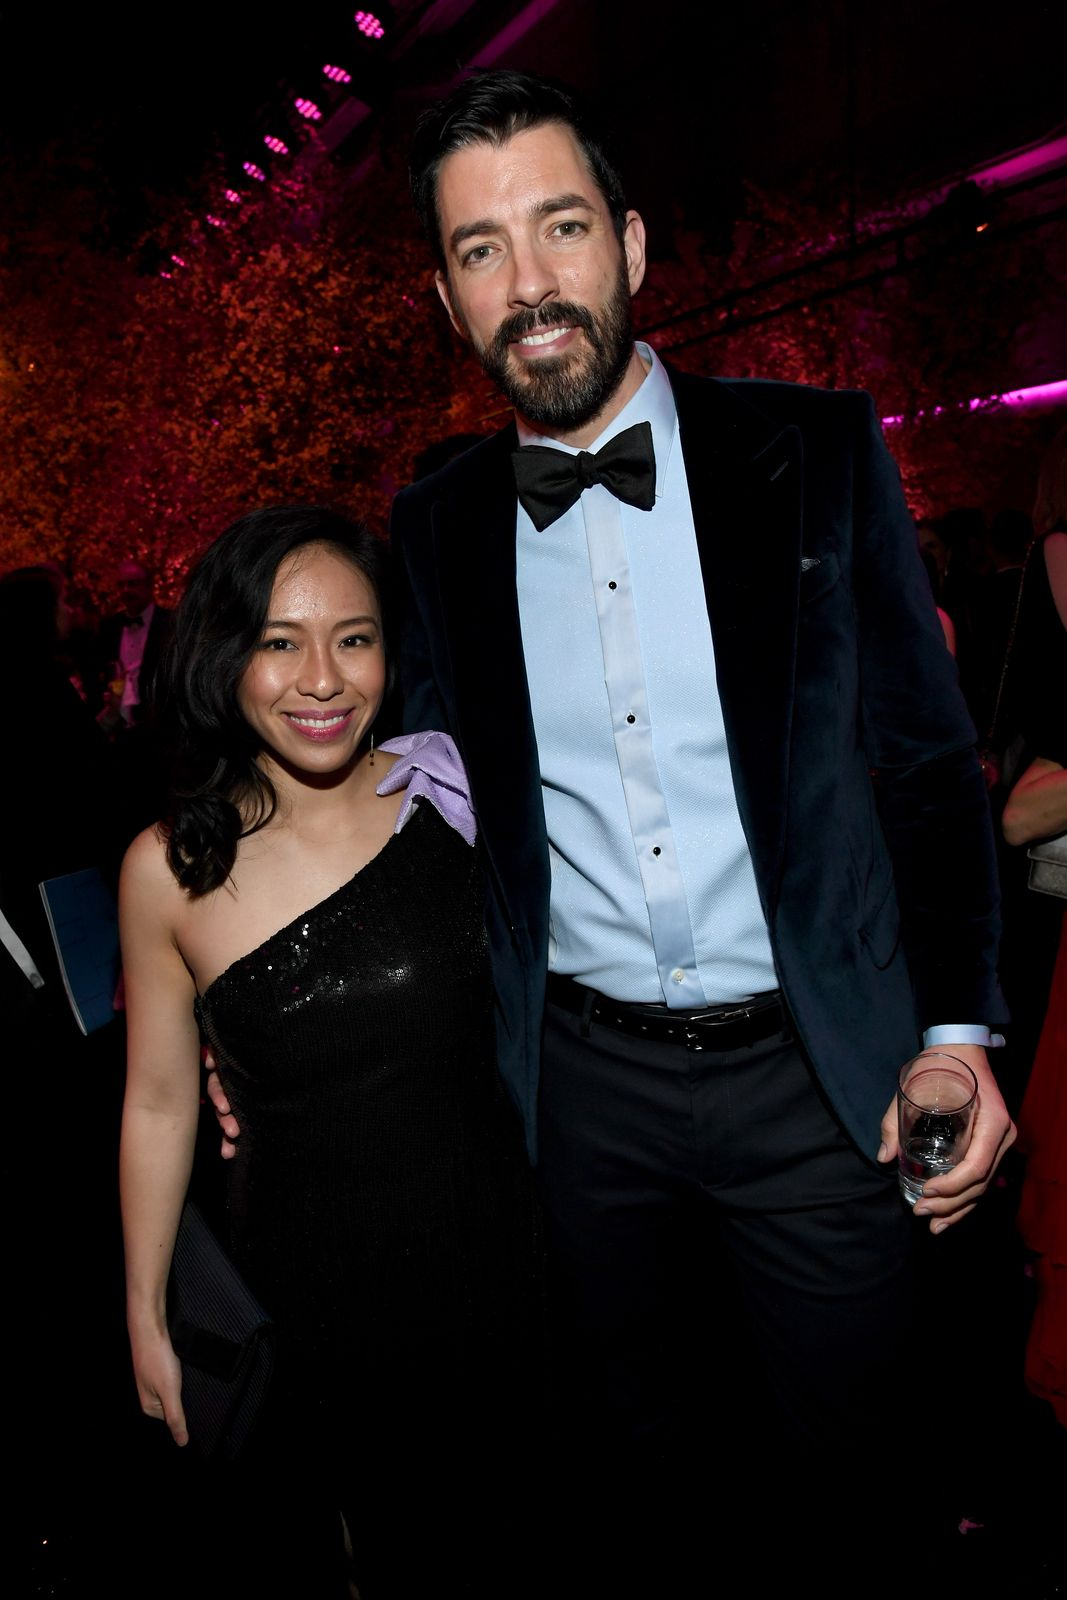 inda Phan and Drew Scott at PEOPLE's Annual Screen Actors Guild Awards Gala at The Shrine Auditorium on January 19, 2020. | Getty Images